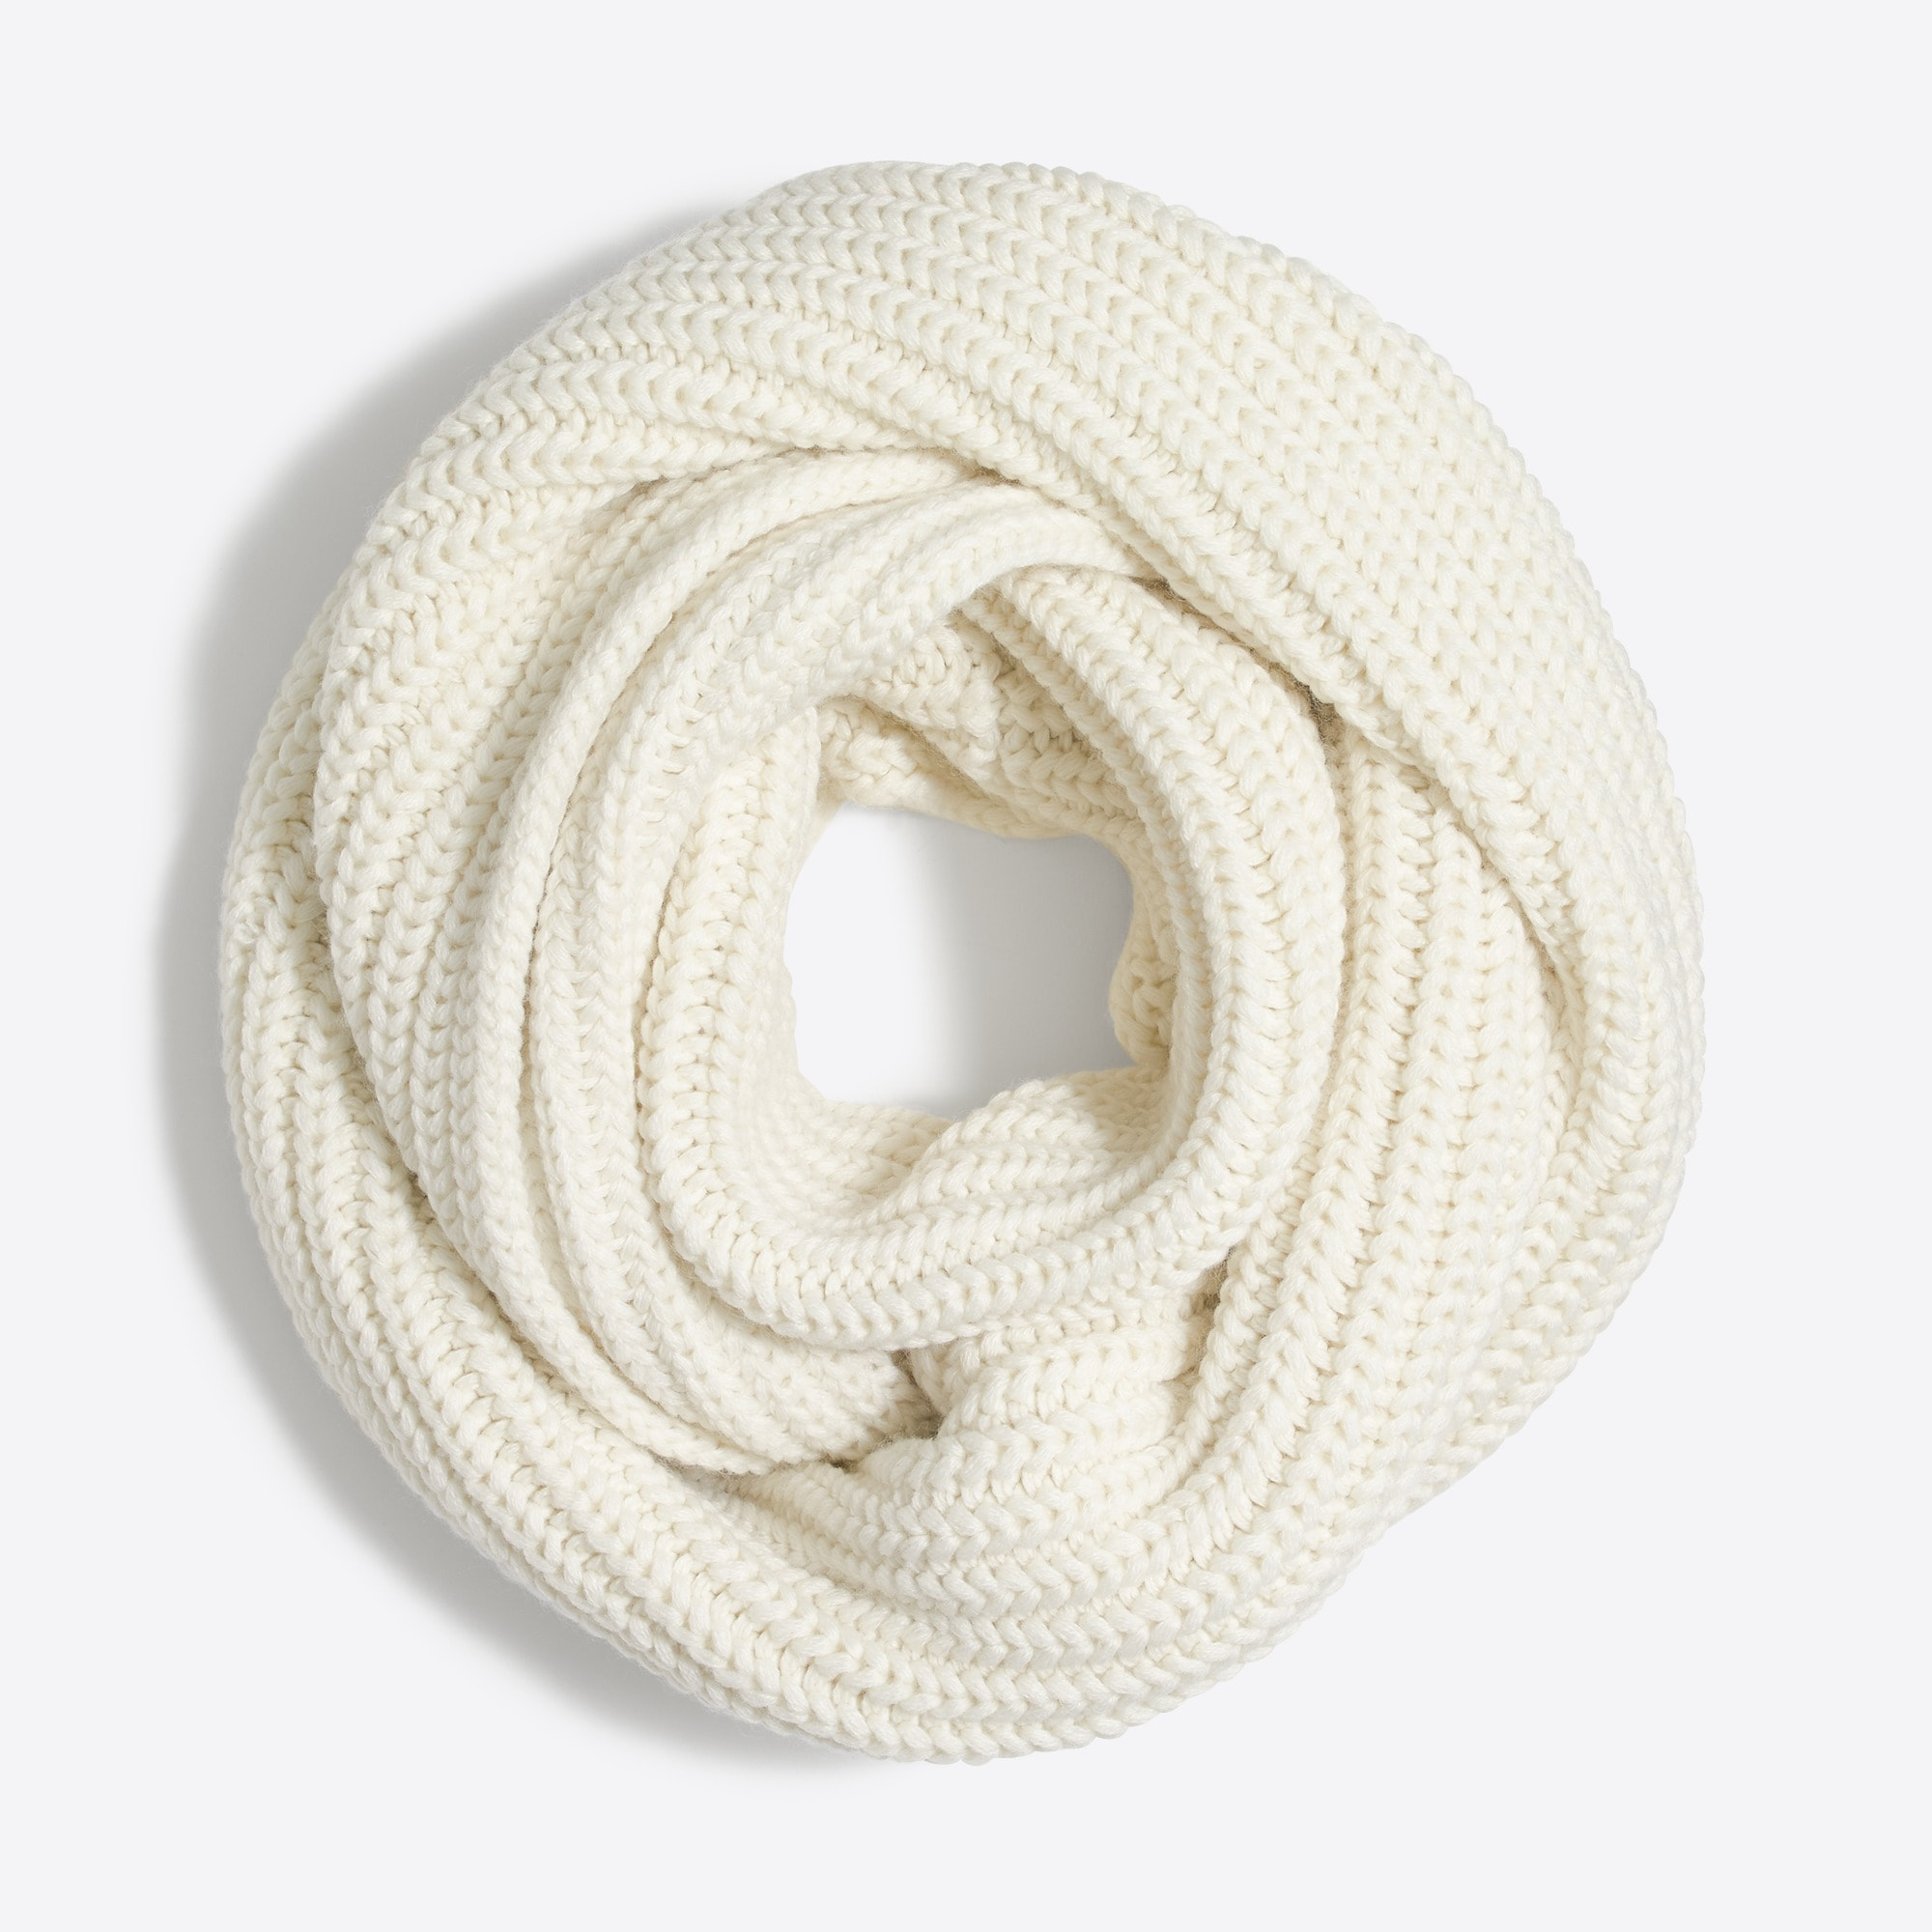 Image 1 for Cozy ribbed snood